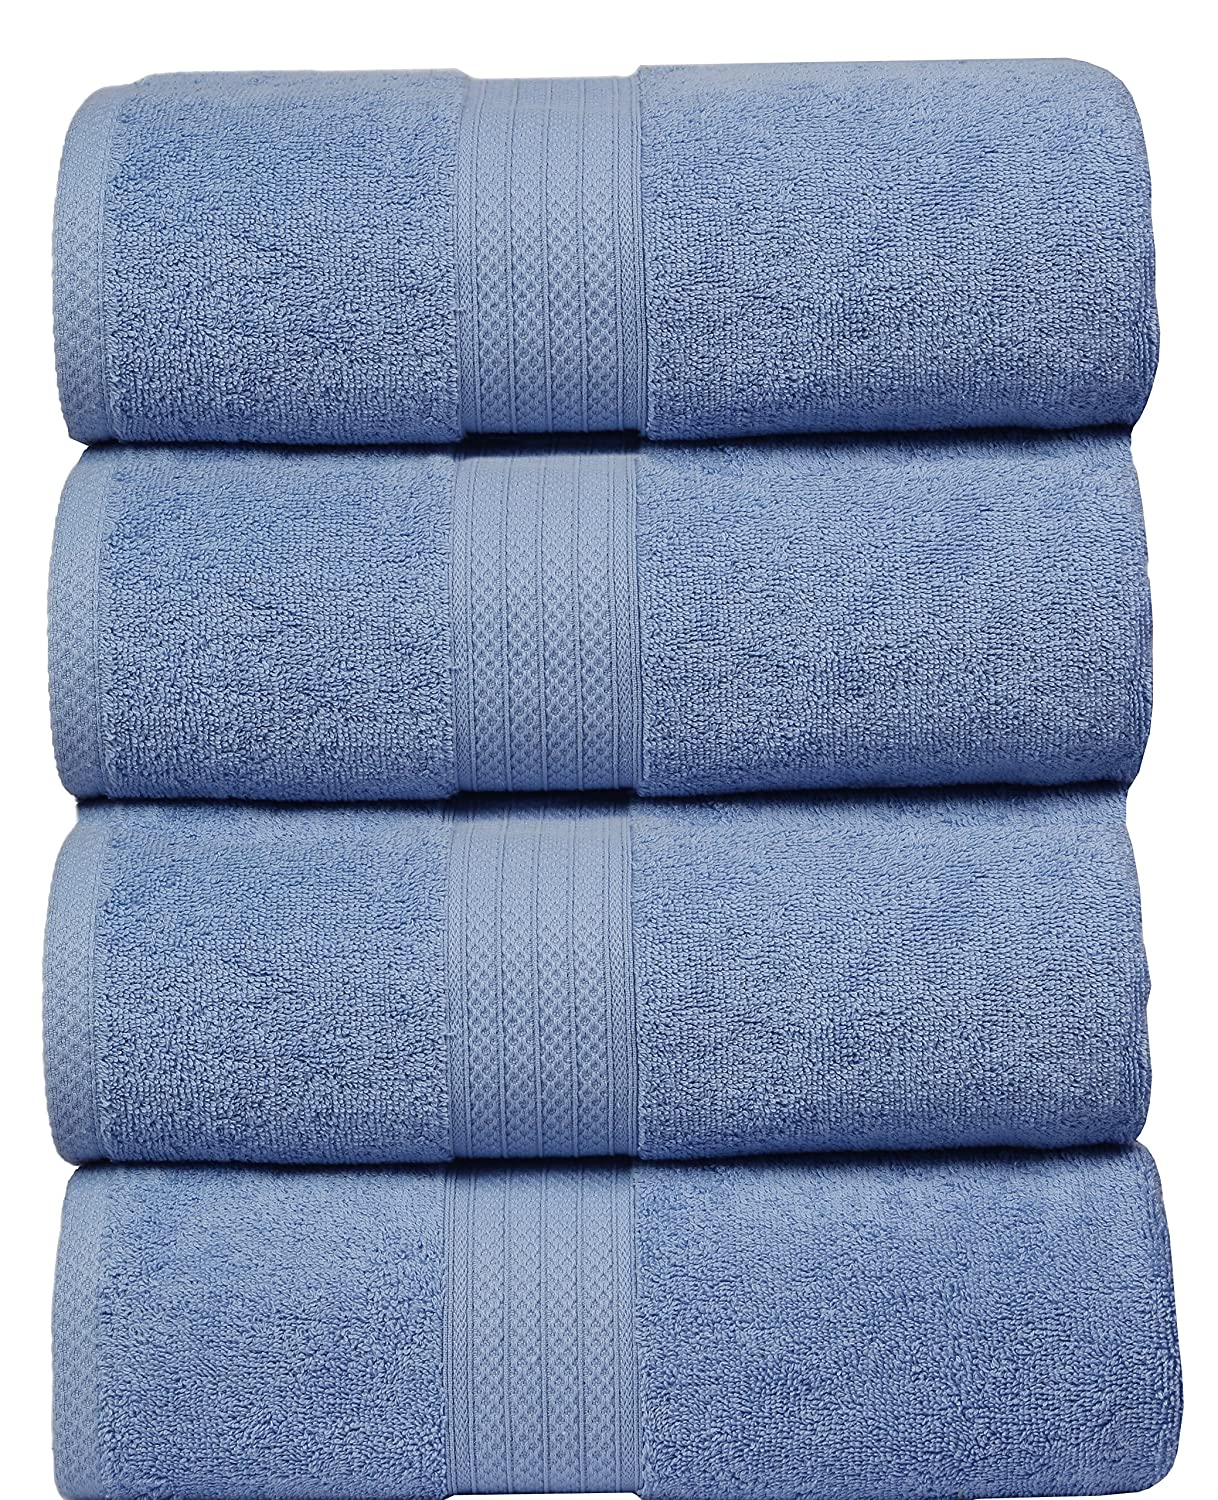 MAHI HOME Luxurious & Ultra Soft 4 Pack Bath Towel Set, 100% Ring Spun Combed Cotton, Highly Absorbent, Ideal for everyday use, 27x54 – White 27x54 – White MahiritzHomeFashion